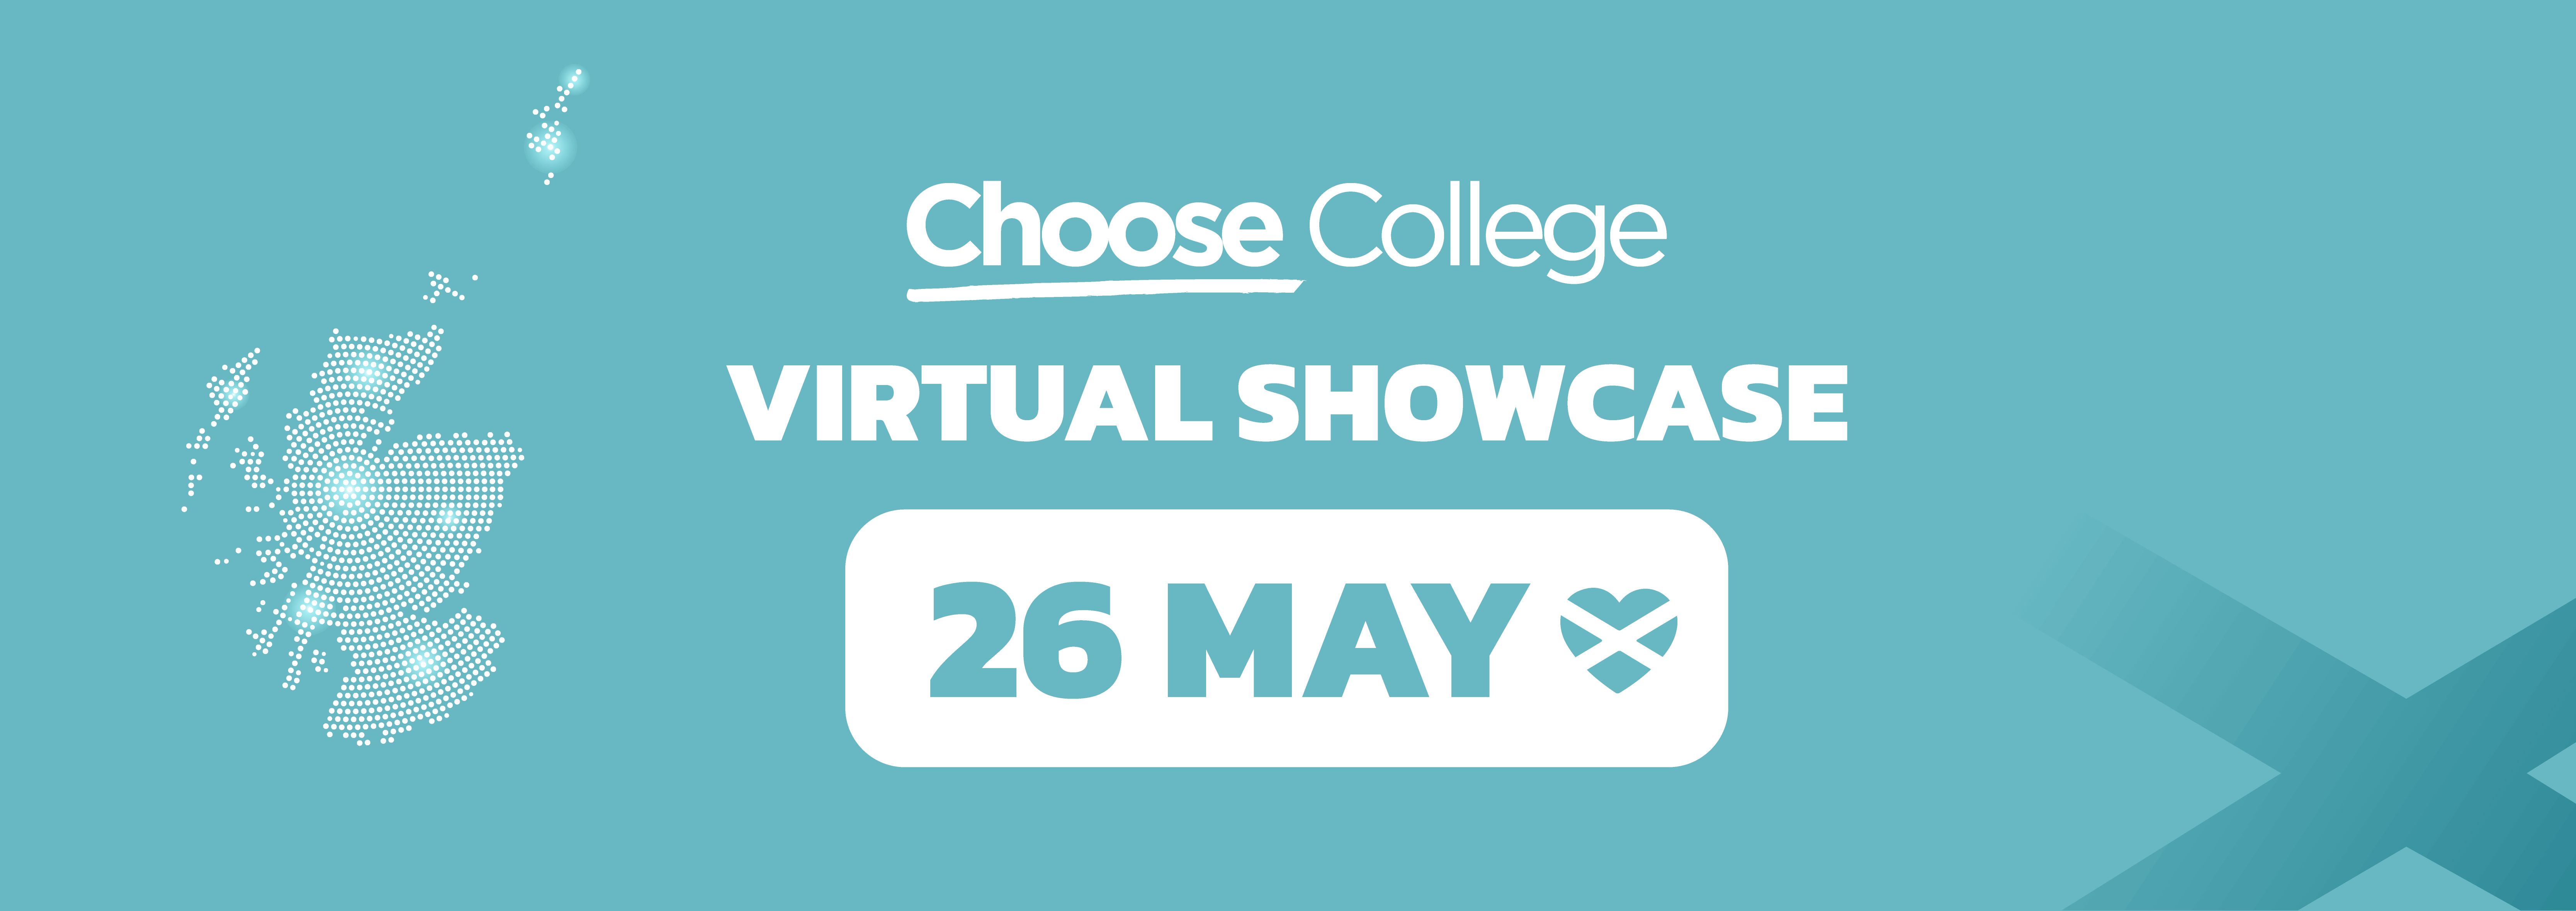 Choose College Virtual Showcase - 26 May